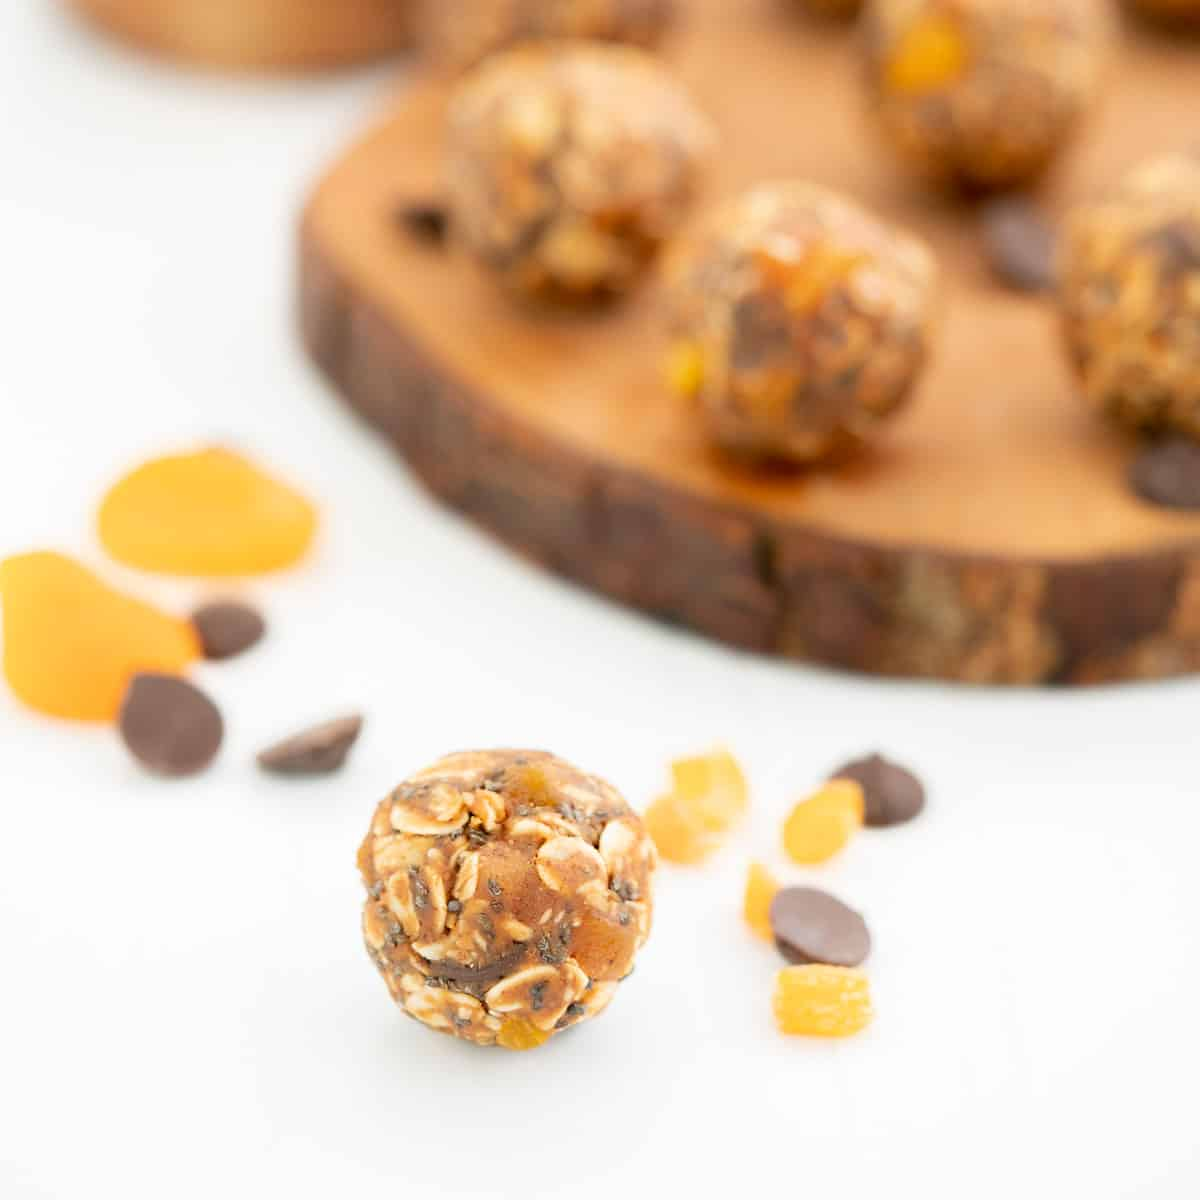 An apricot ball on a white bench top with a wooden tray of more apricot balls in the background.